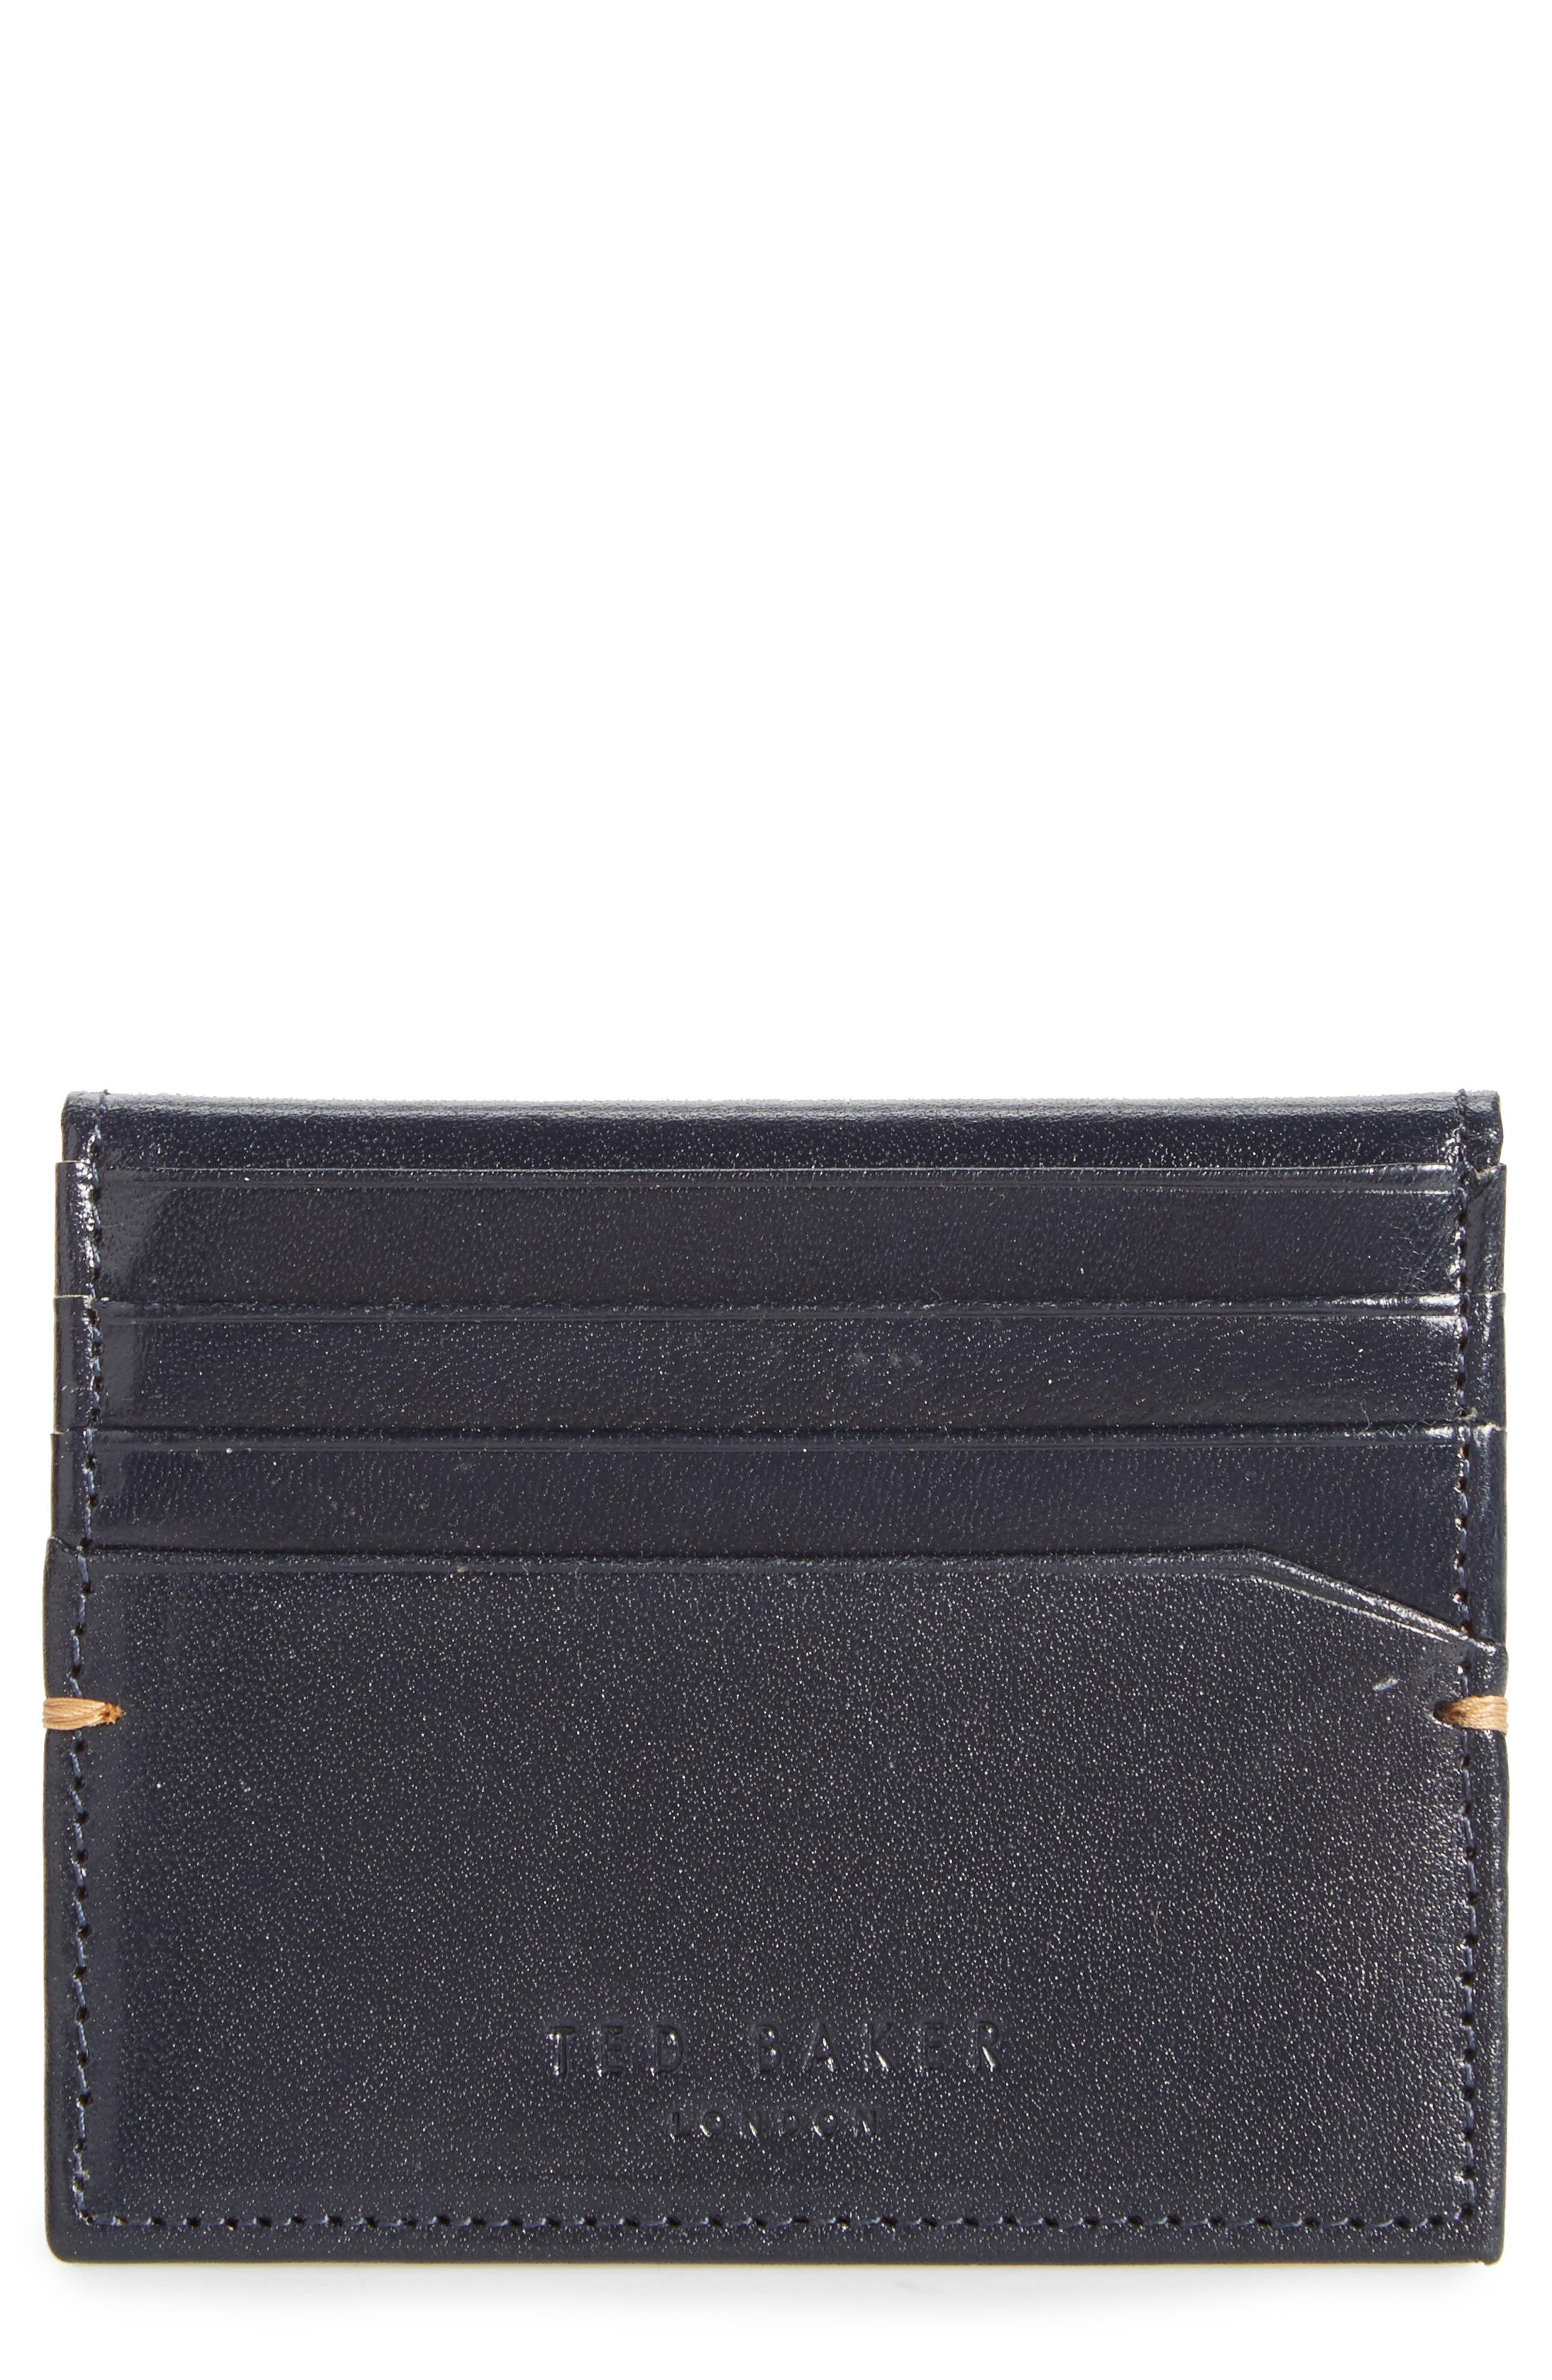 TED BAKER LONDON Brights Leather Card Case